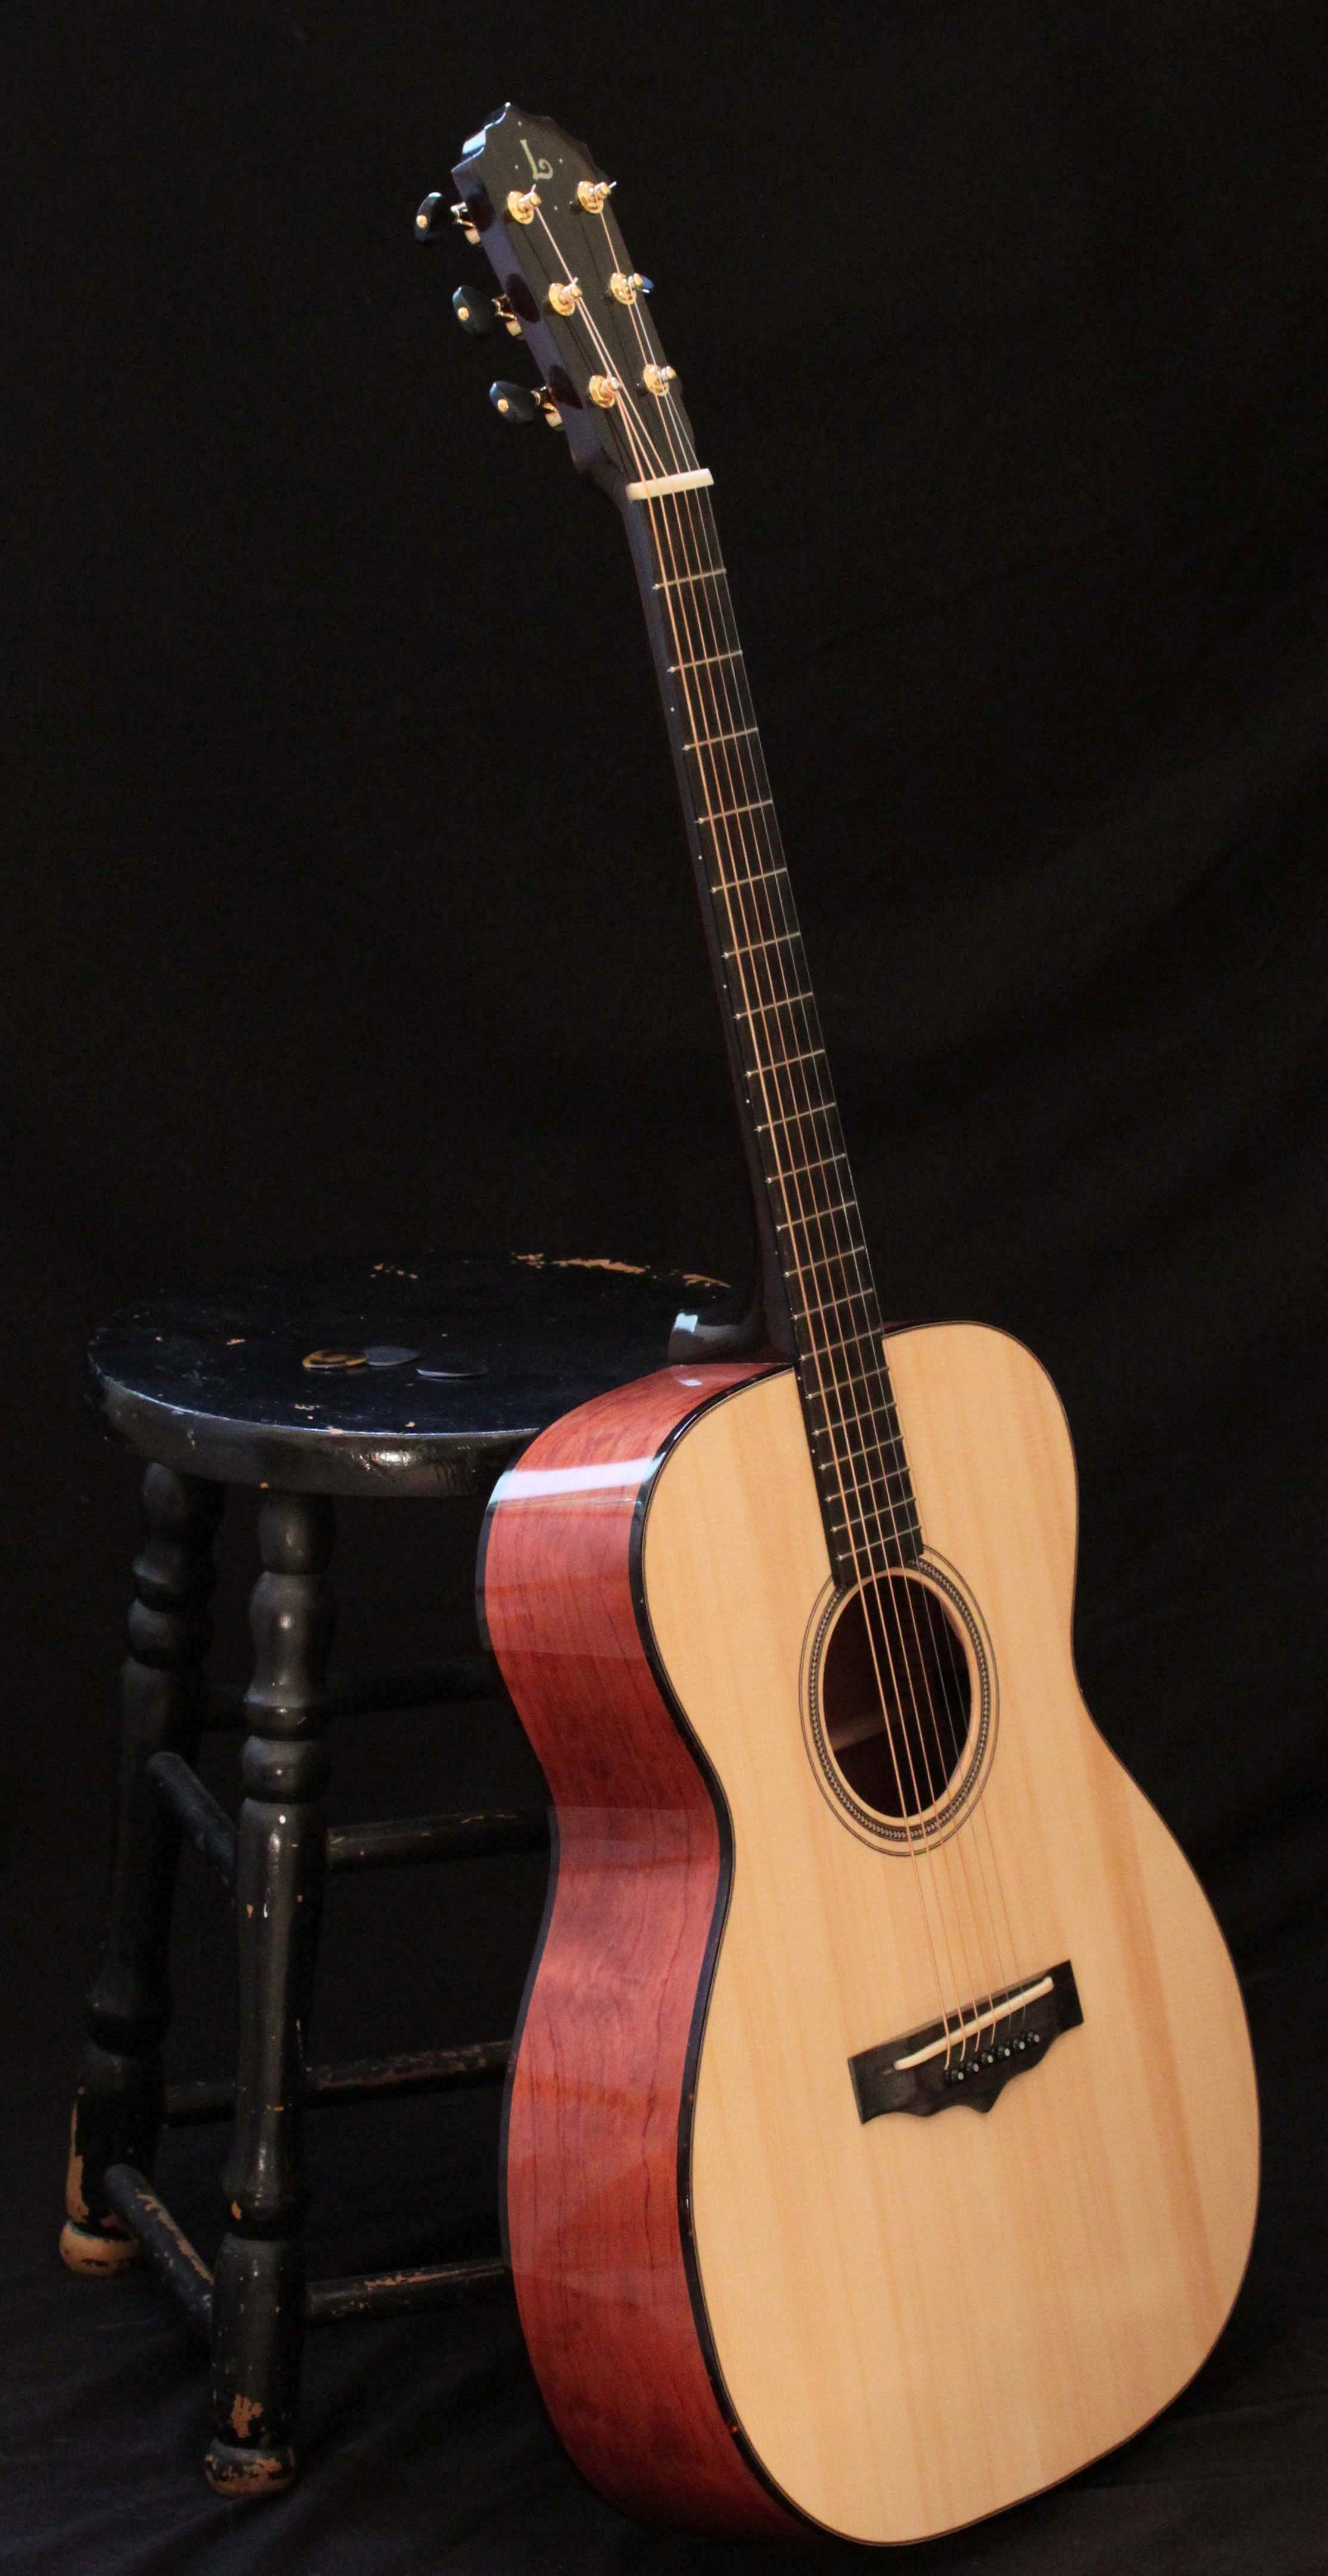 Handmade Bubinga Guitar - win this guitar at www.lichtyguitars.com